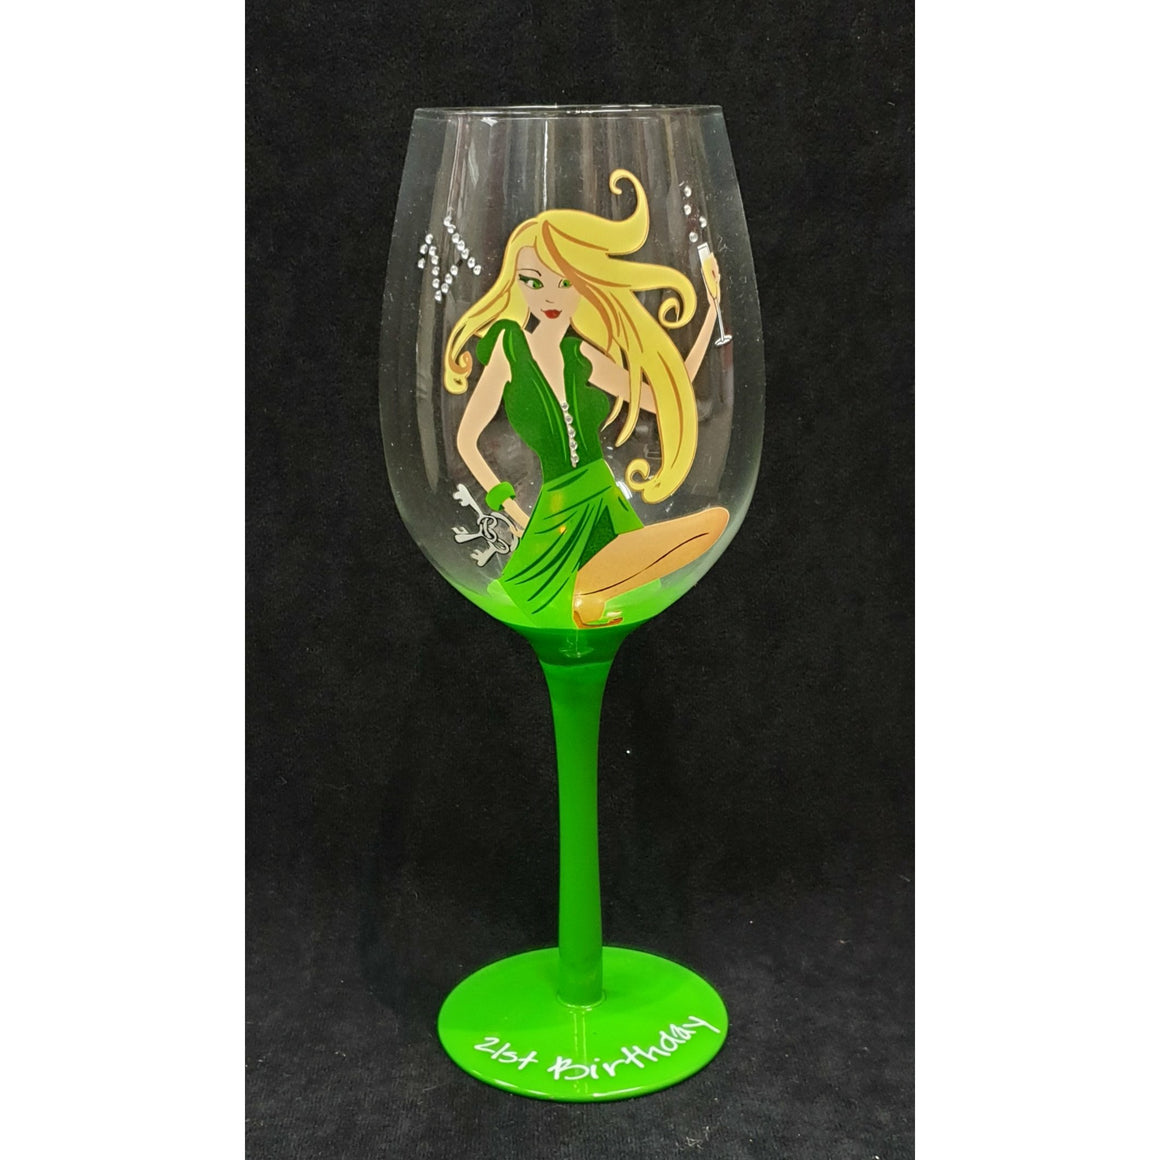 LADY WINE GLASS 21